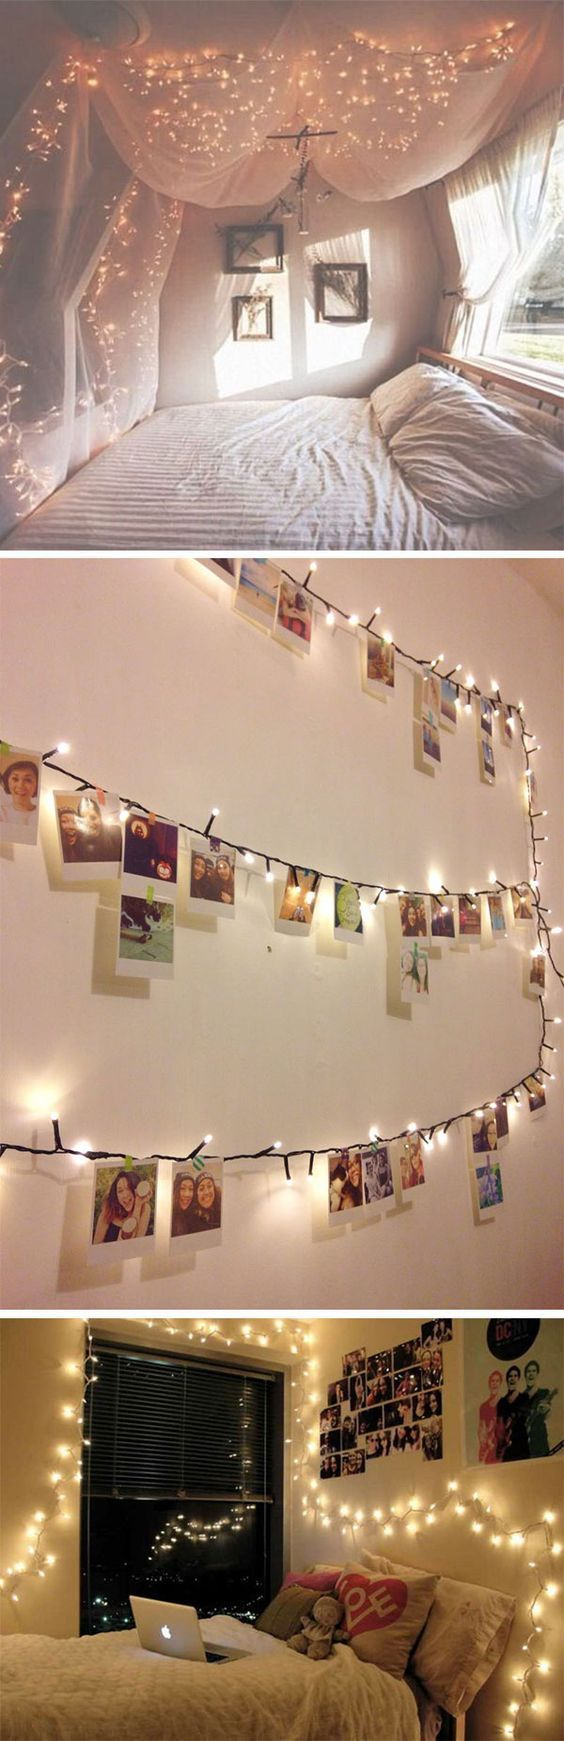 13 ways to use fairy lights to make your bedroom look magical - Lights For Teenage Bedrooms